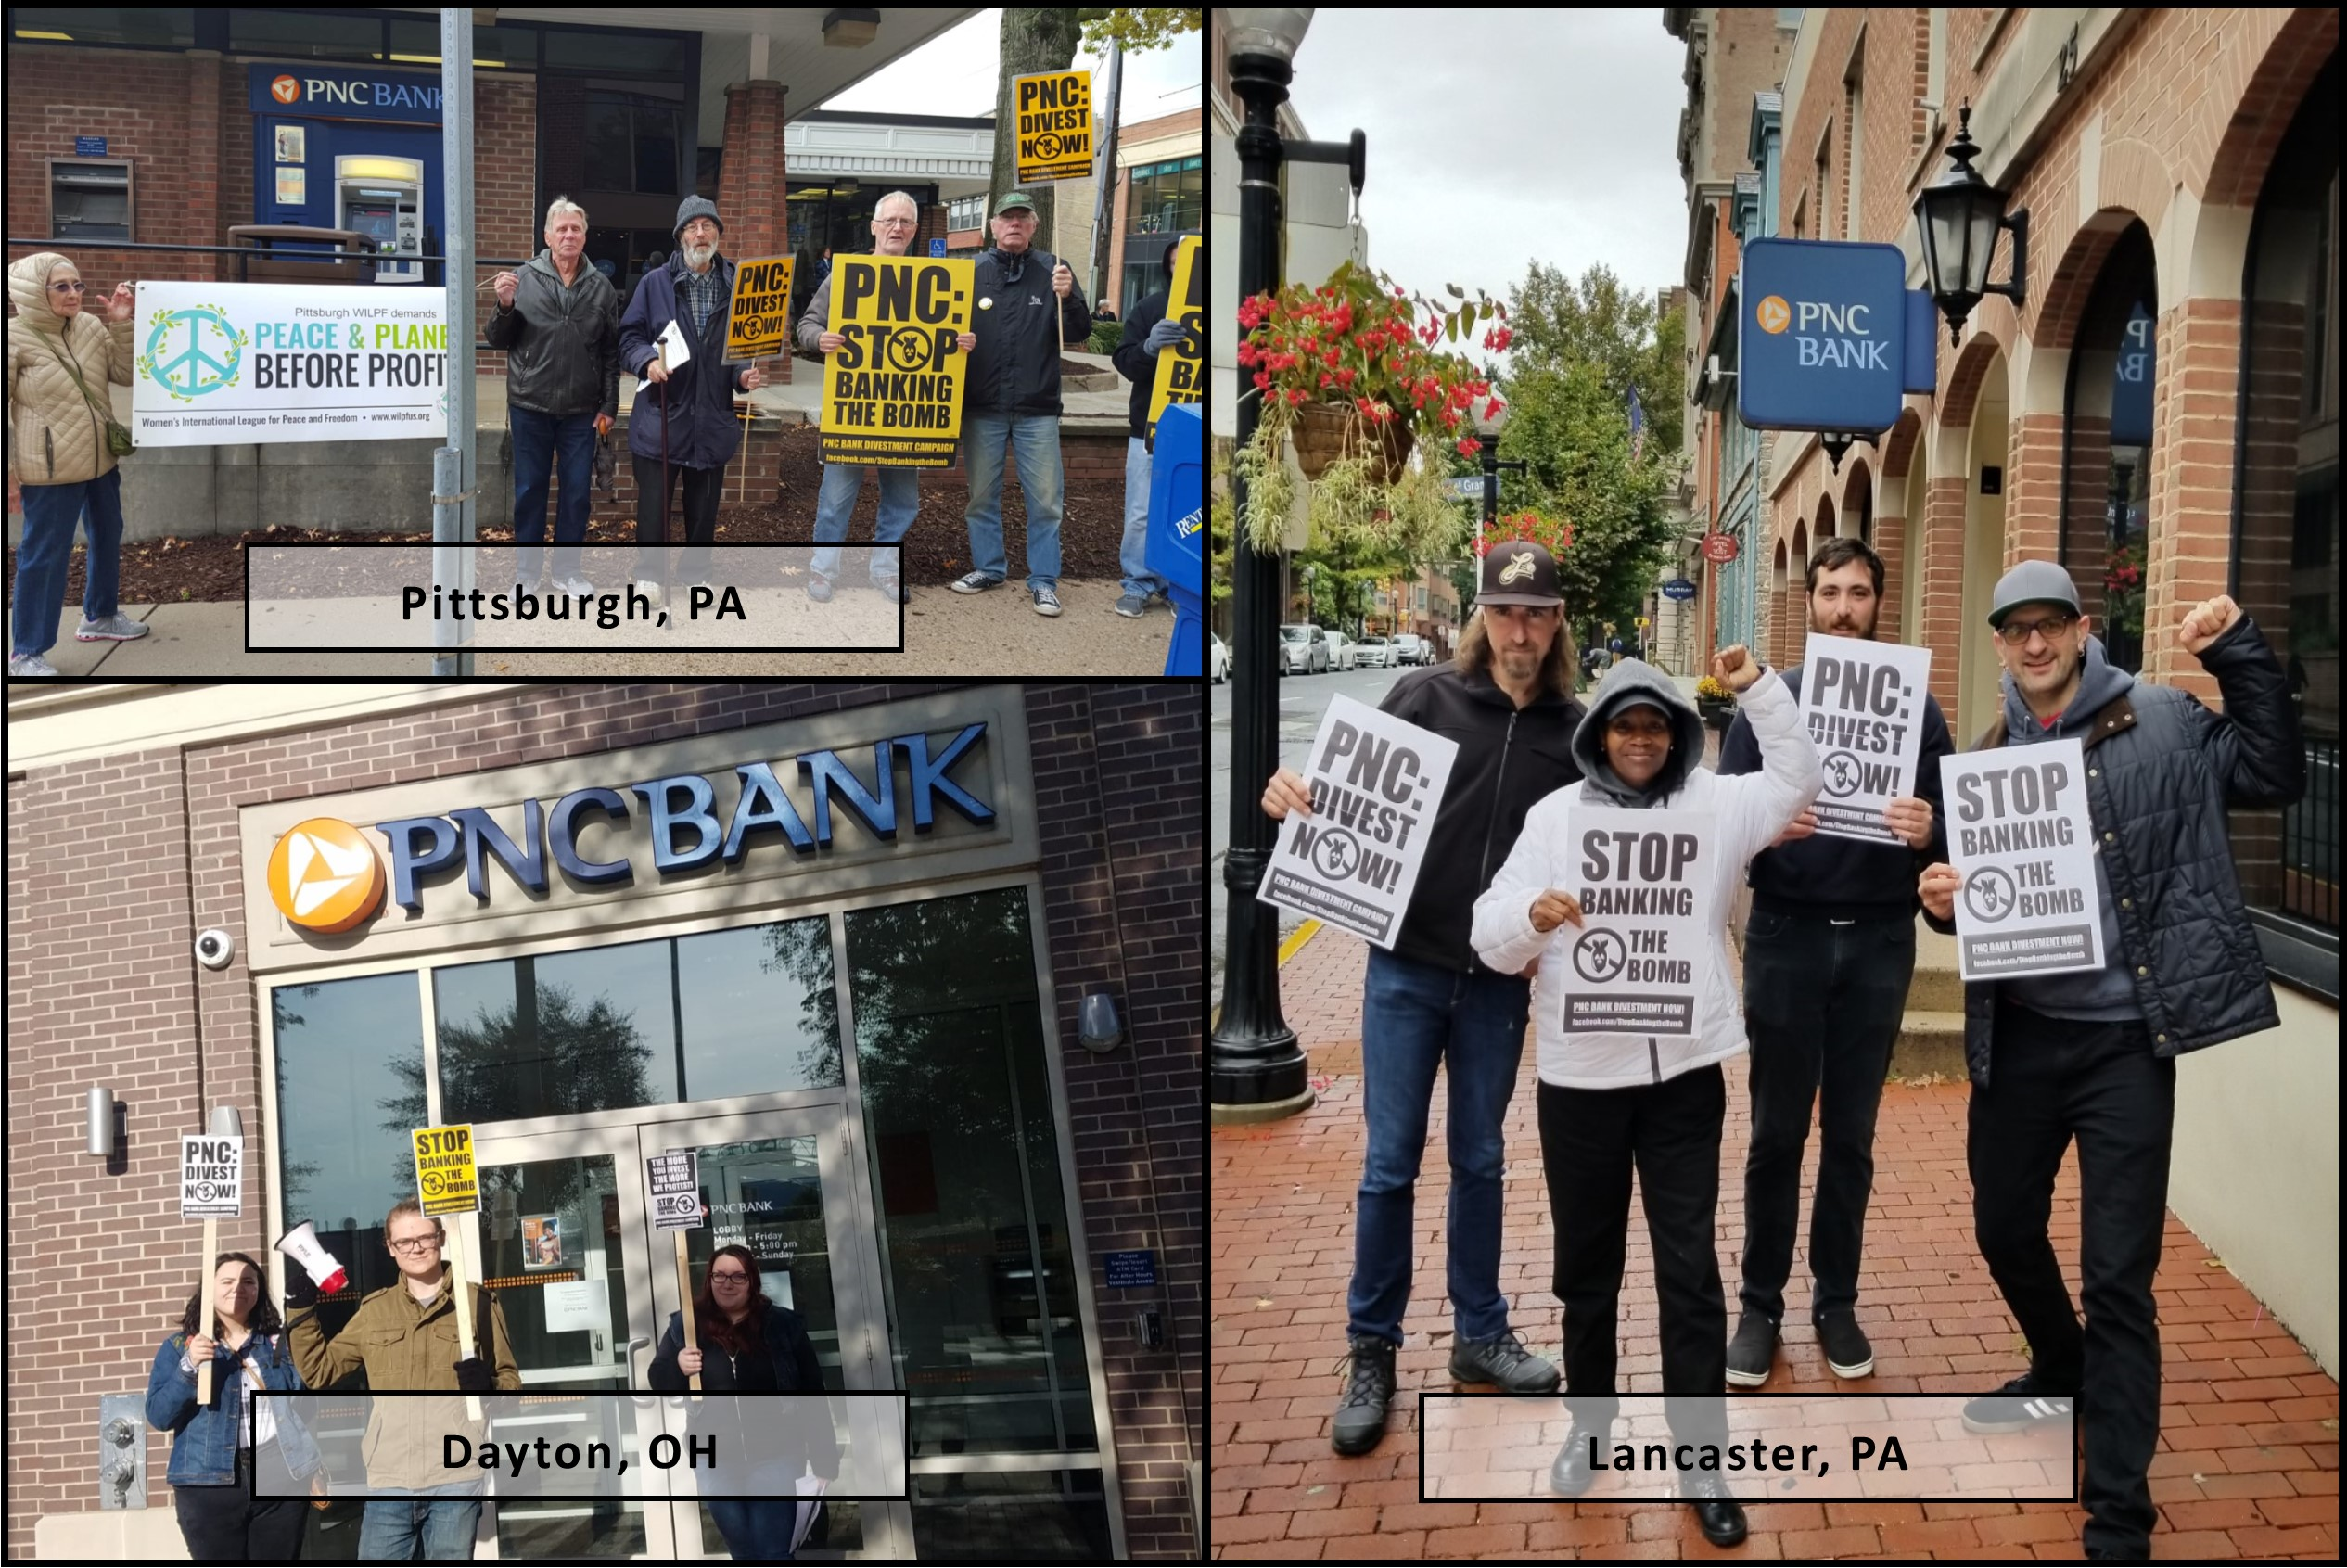 Three cities, three actions, one target: PNC Bank